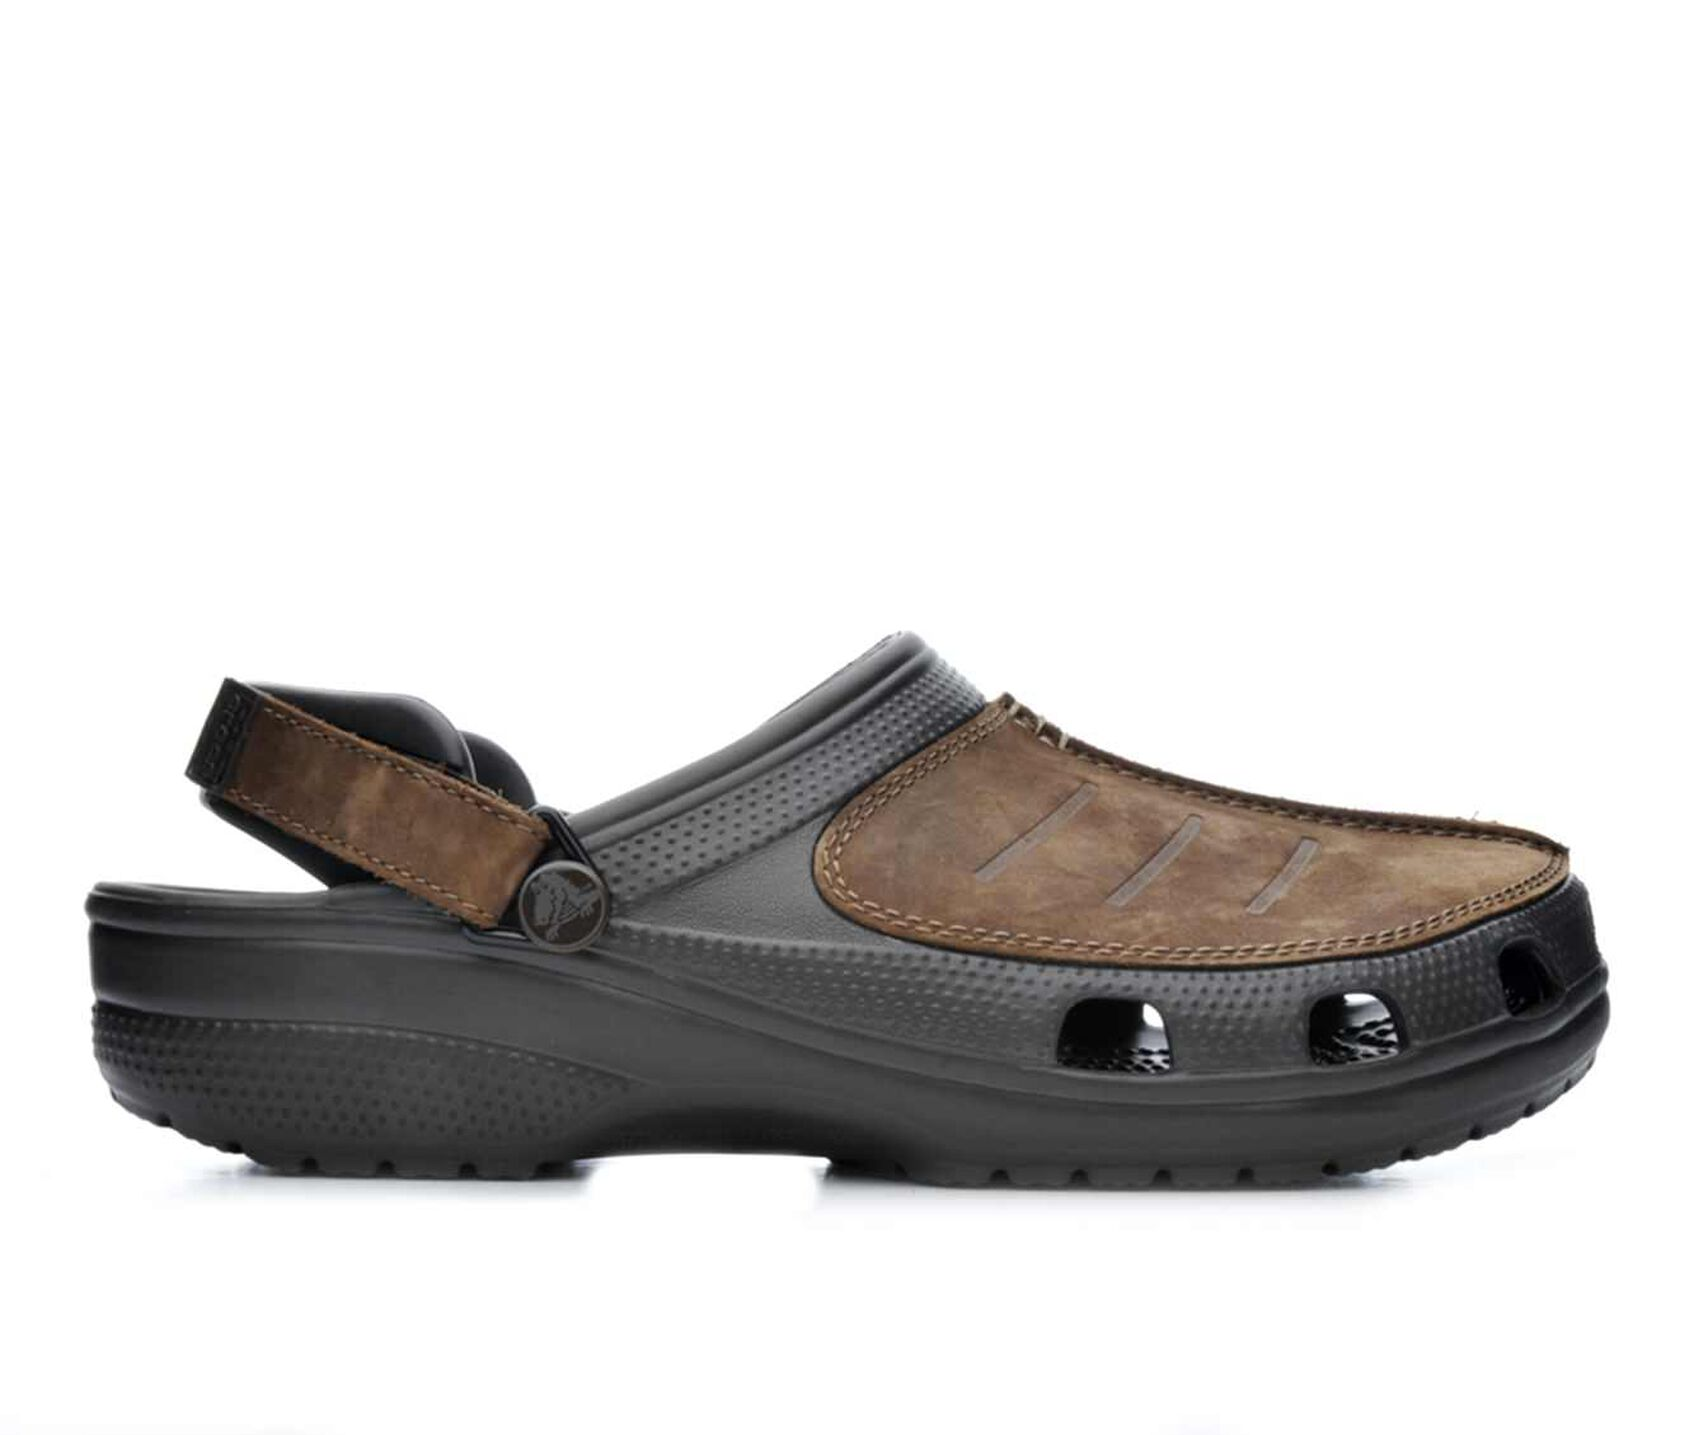 95ee758397a8 ... Crocs Yukon Mesa Clog. Previous